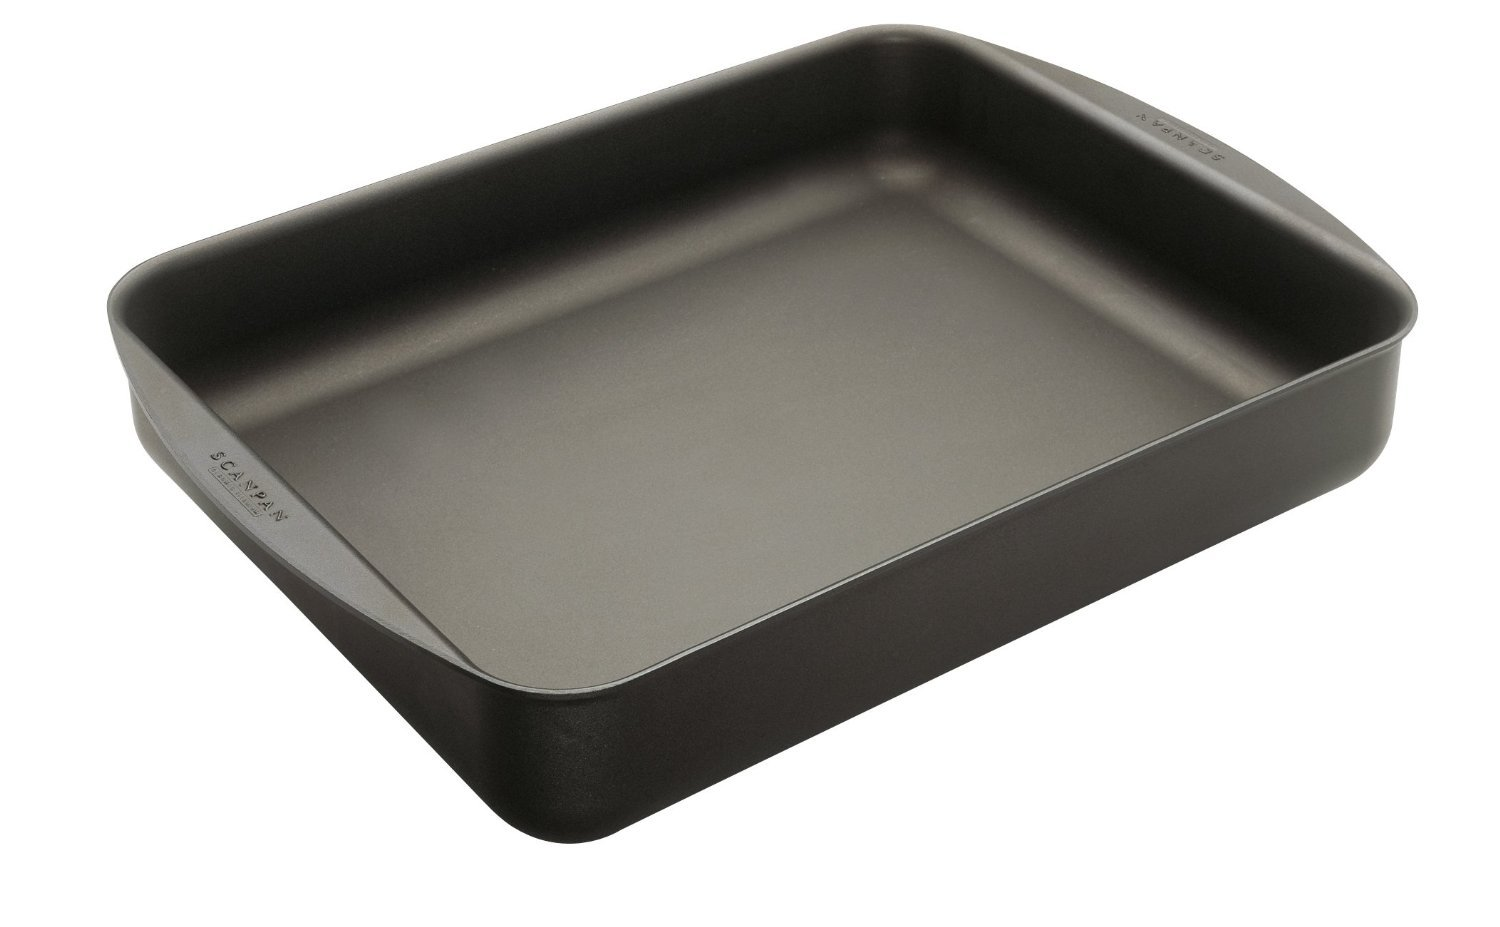 Scanpan Classic Roasting Pan, 3.25 QT, 13.5'' x 8.75'' by Scanpan